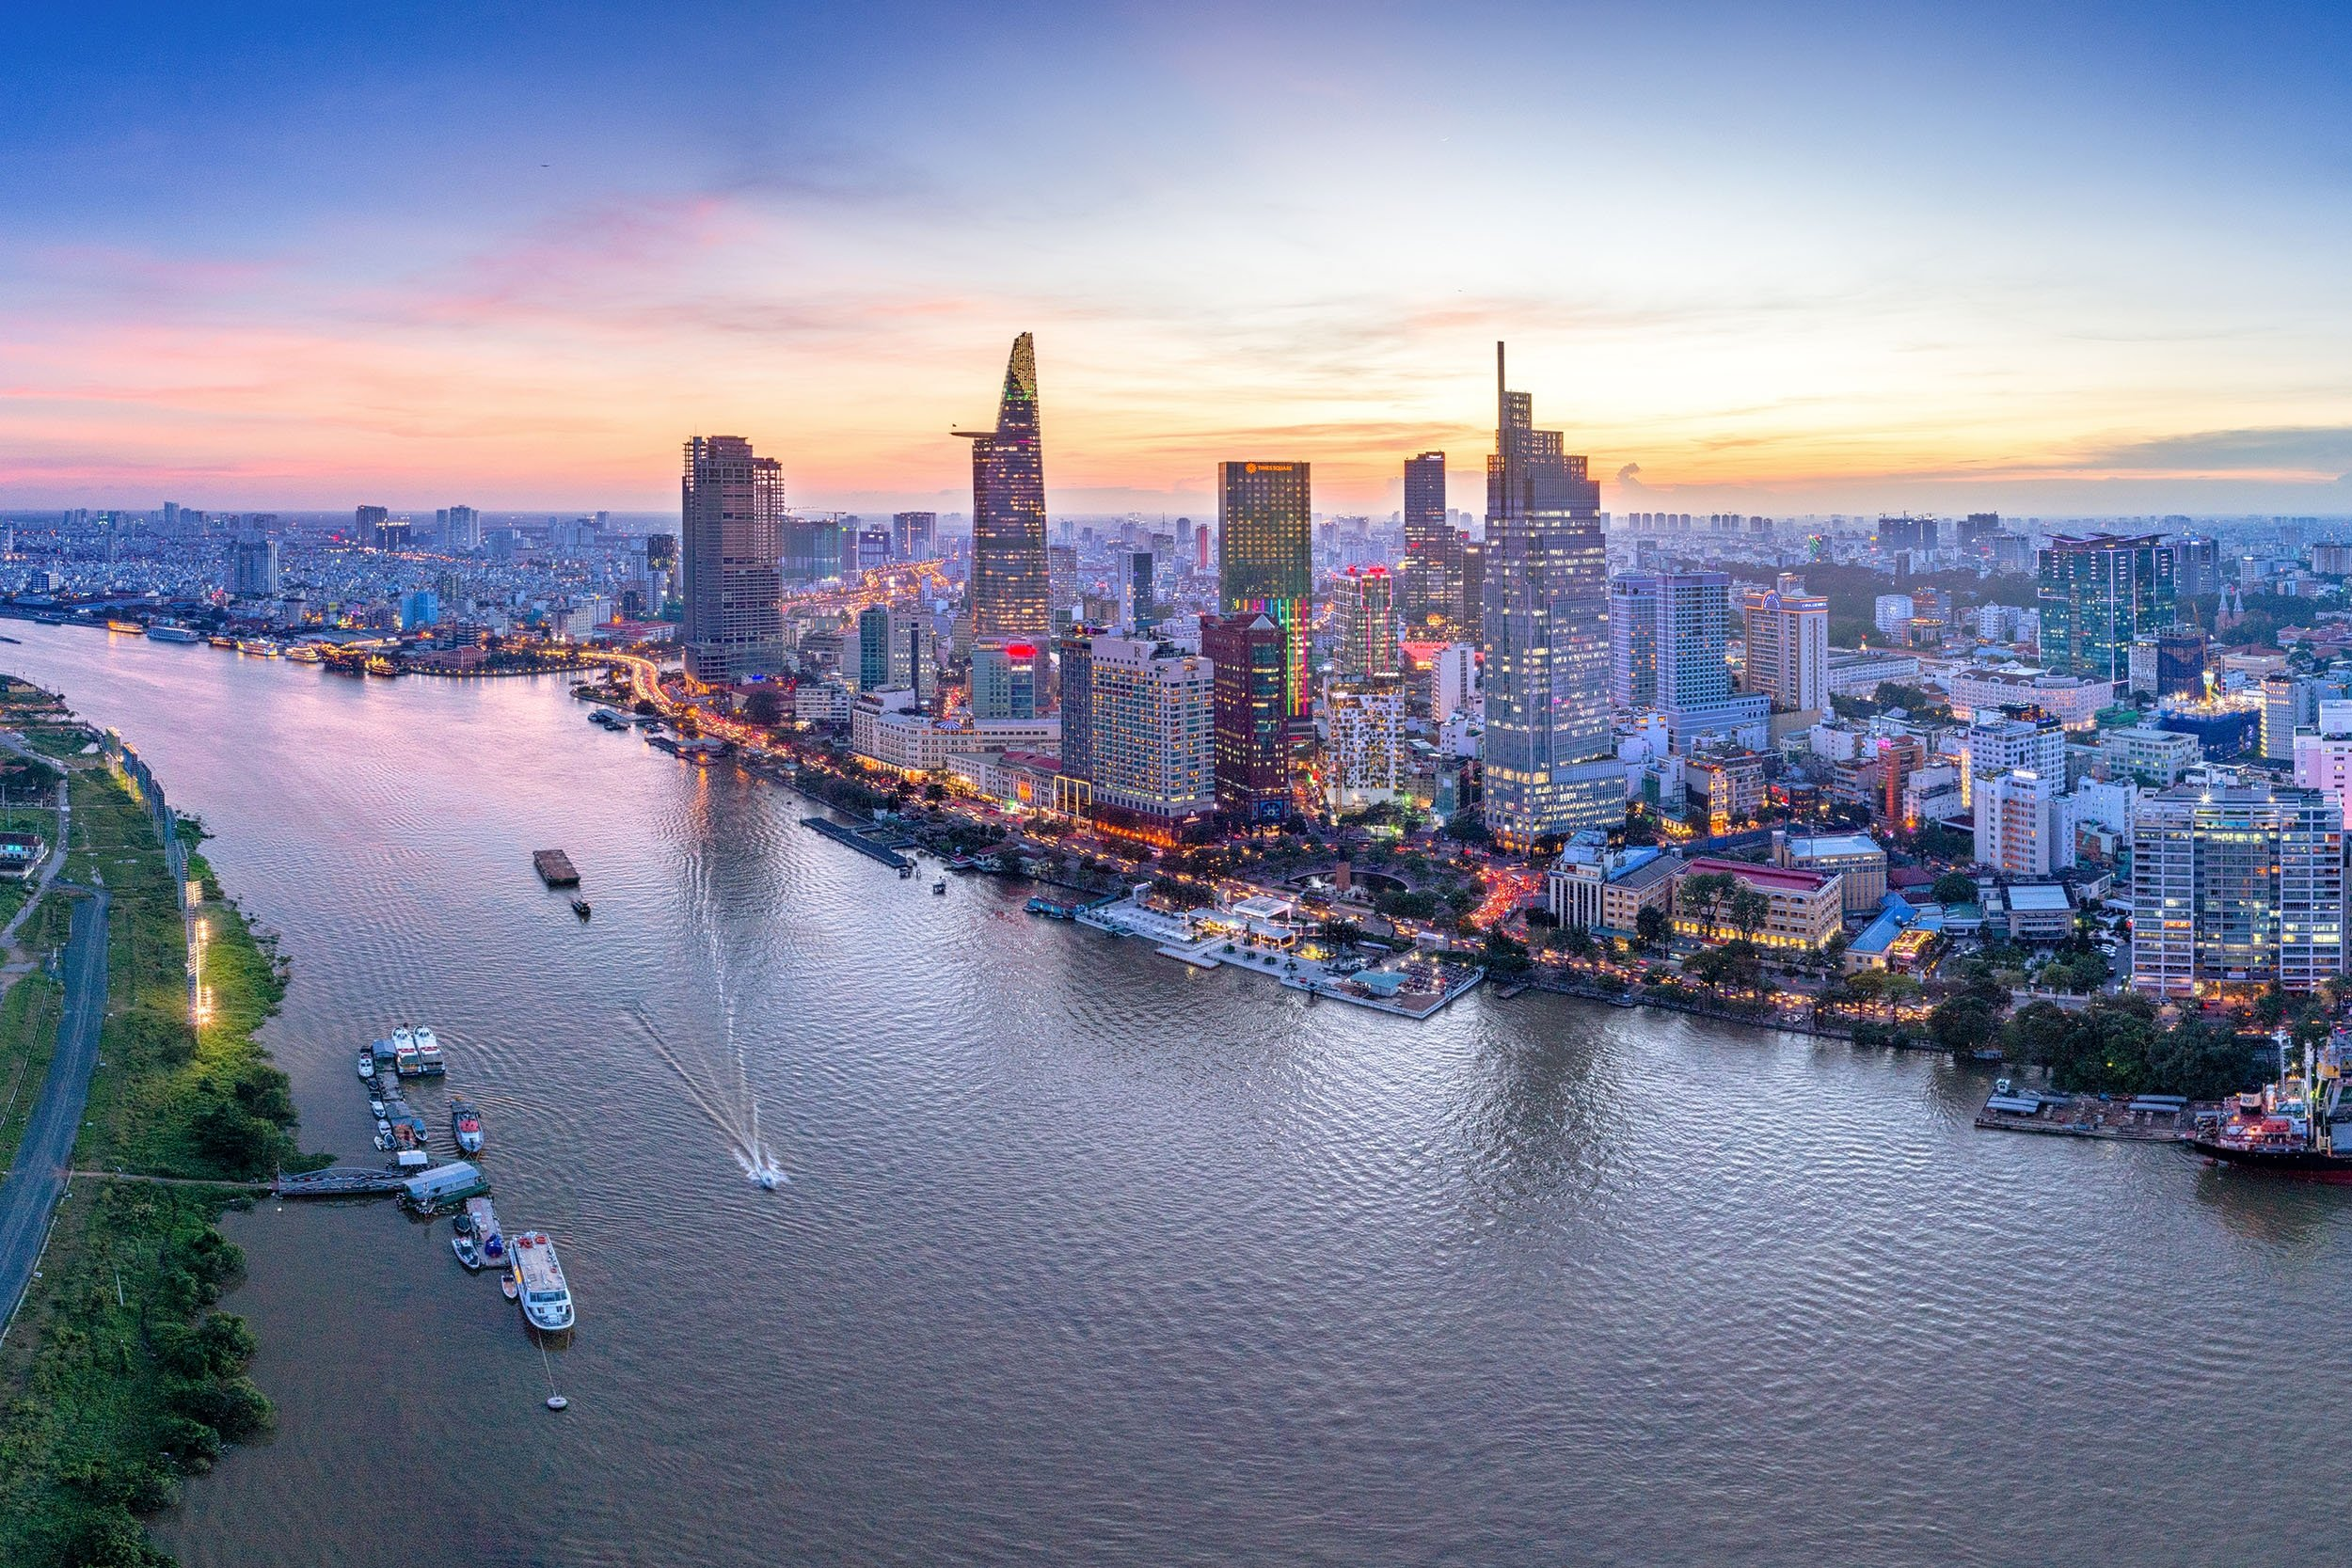 An aerial view shows the skyscrapers in the urban region of the city of Ho Chi Minh along the River Saigon, Vietnam, Nov. 20, 2017.(Shutterstock Photo)